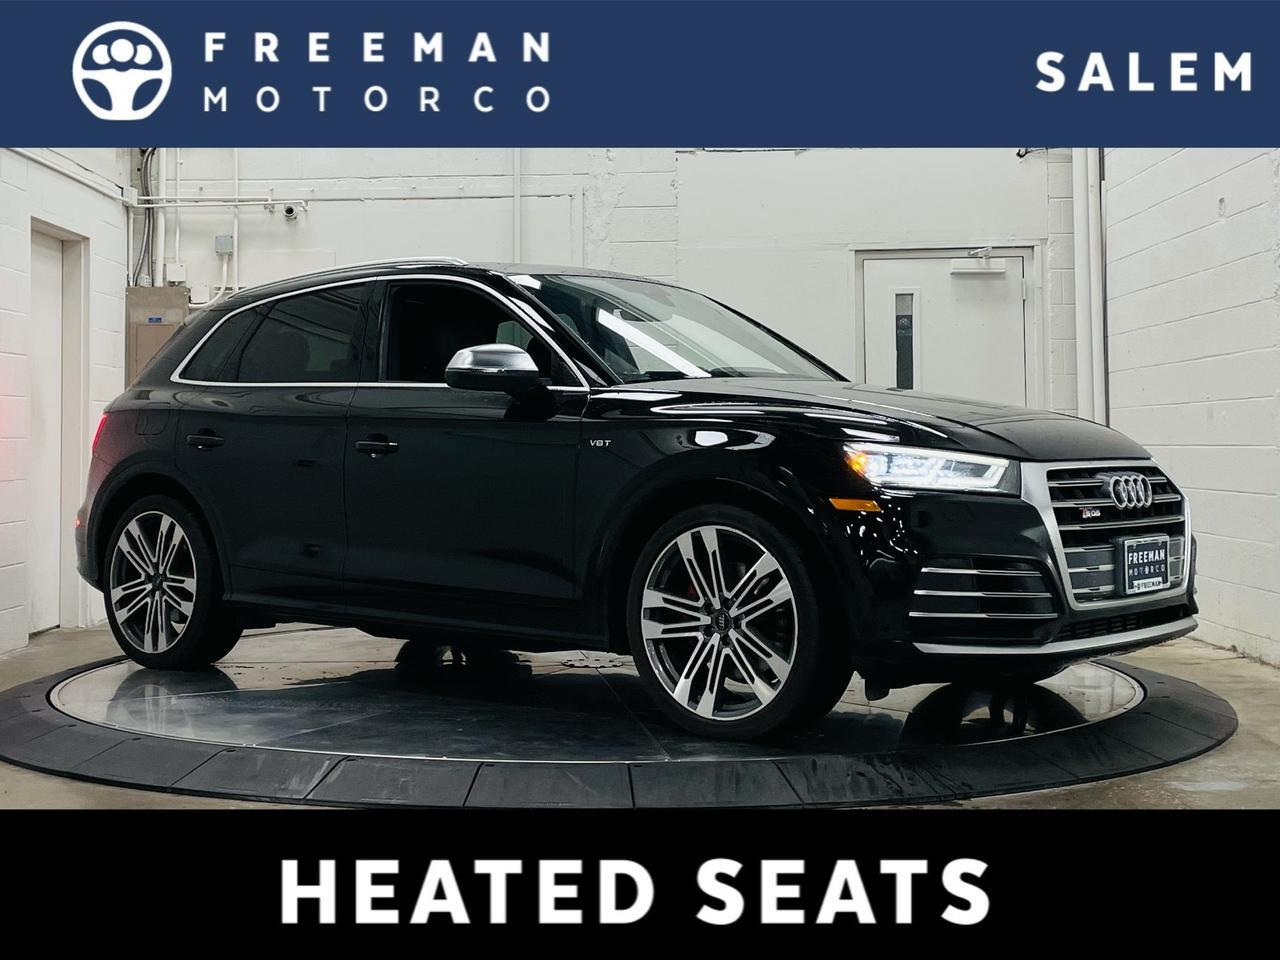 2018 Audi SQ5 Premium Plus S Sport Package Virtual Cockpit Salem OR